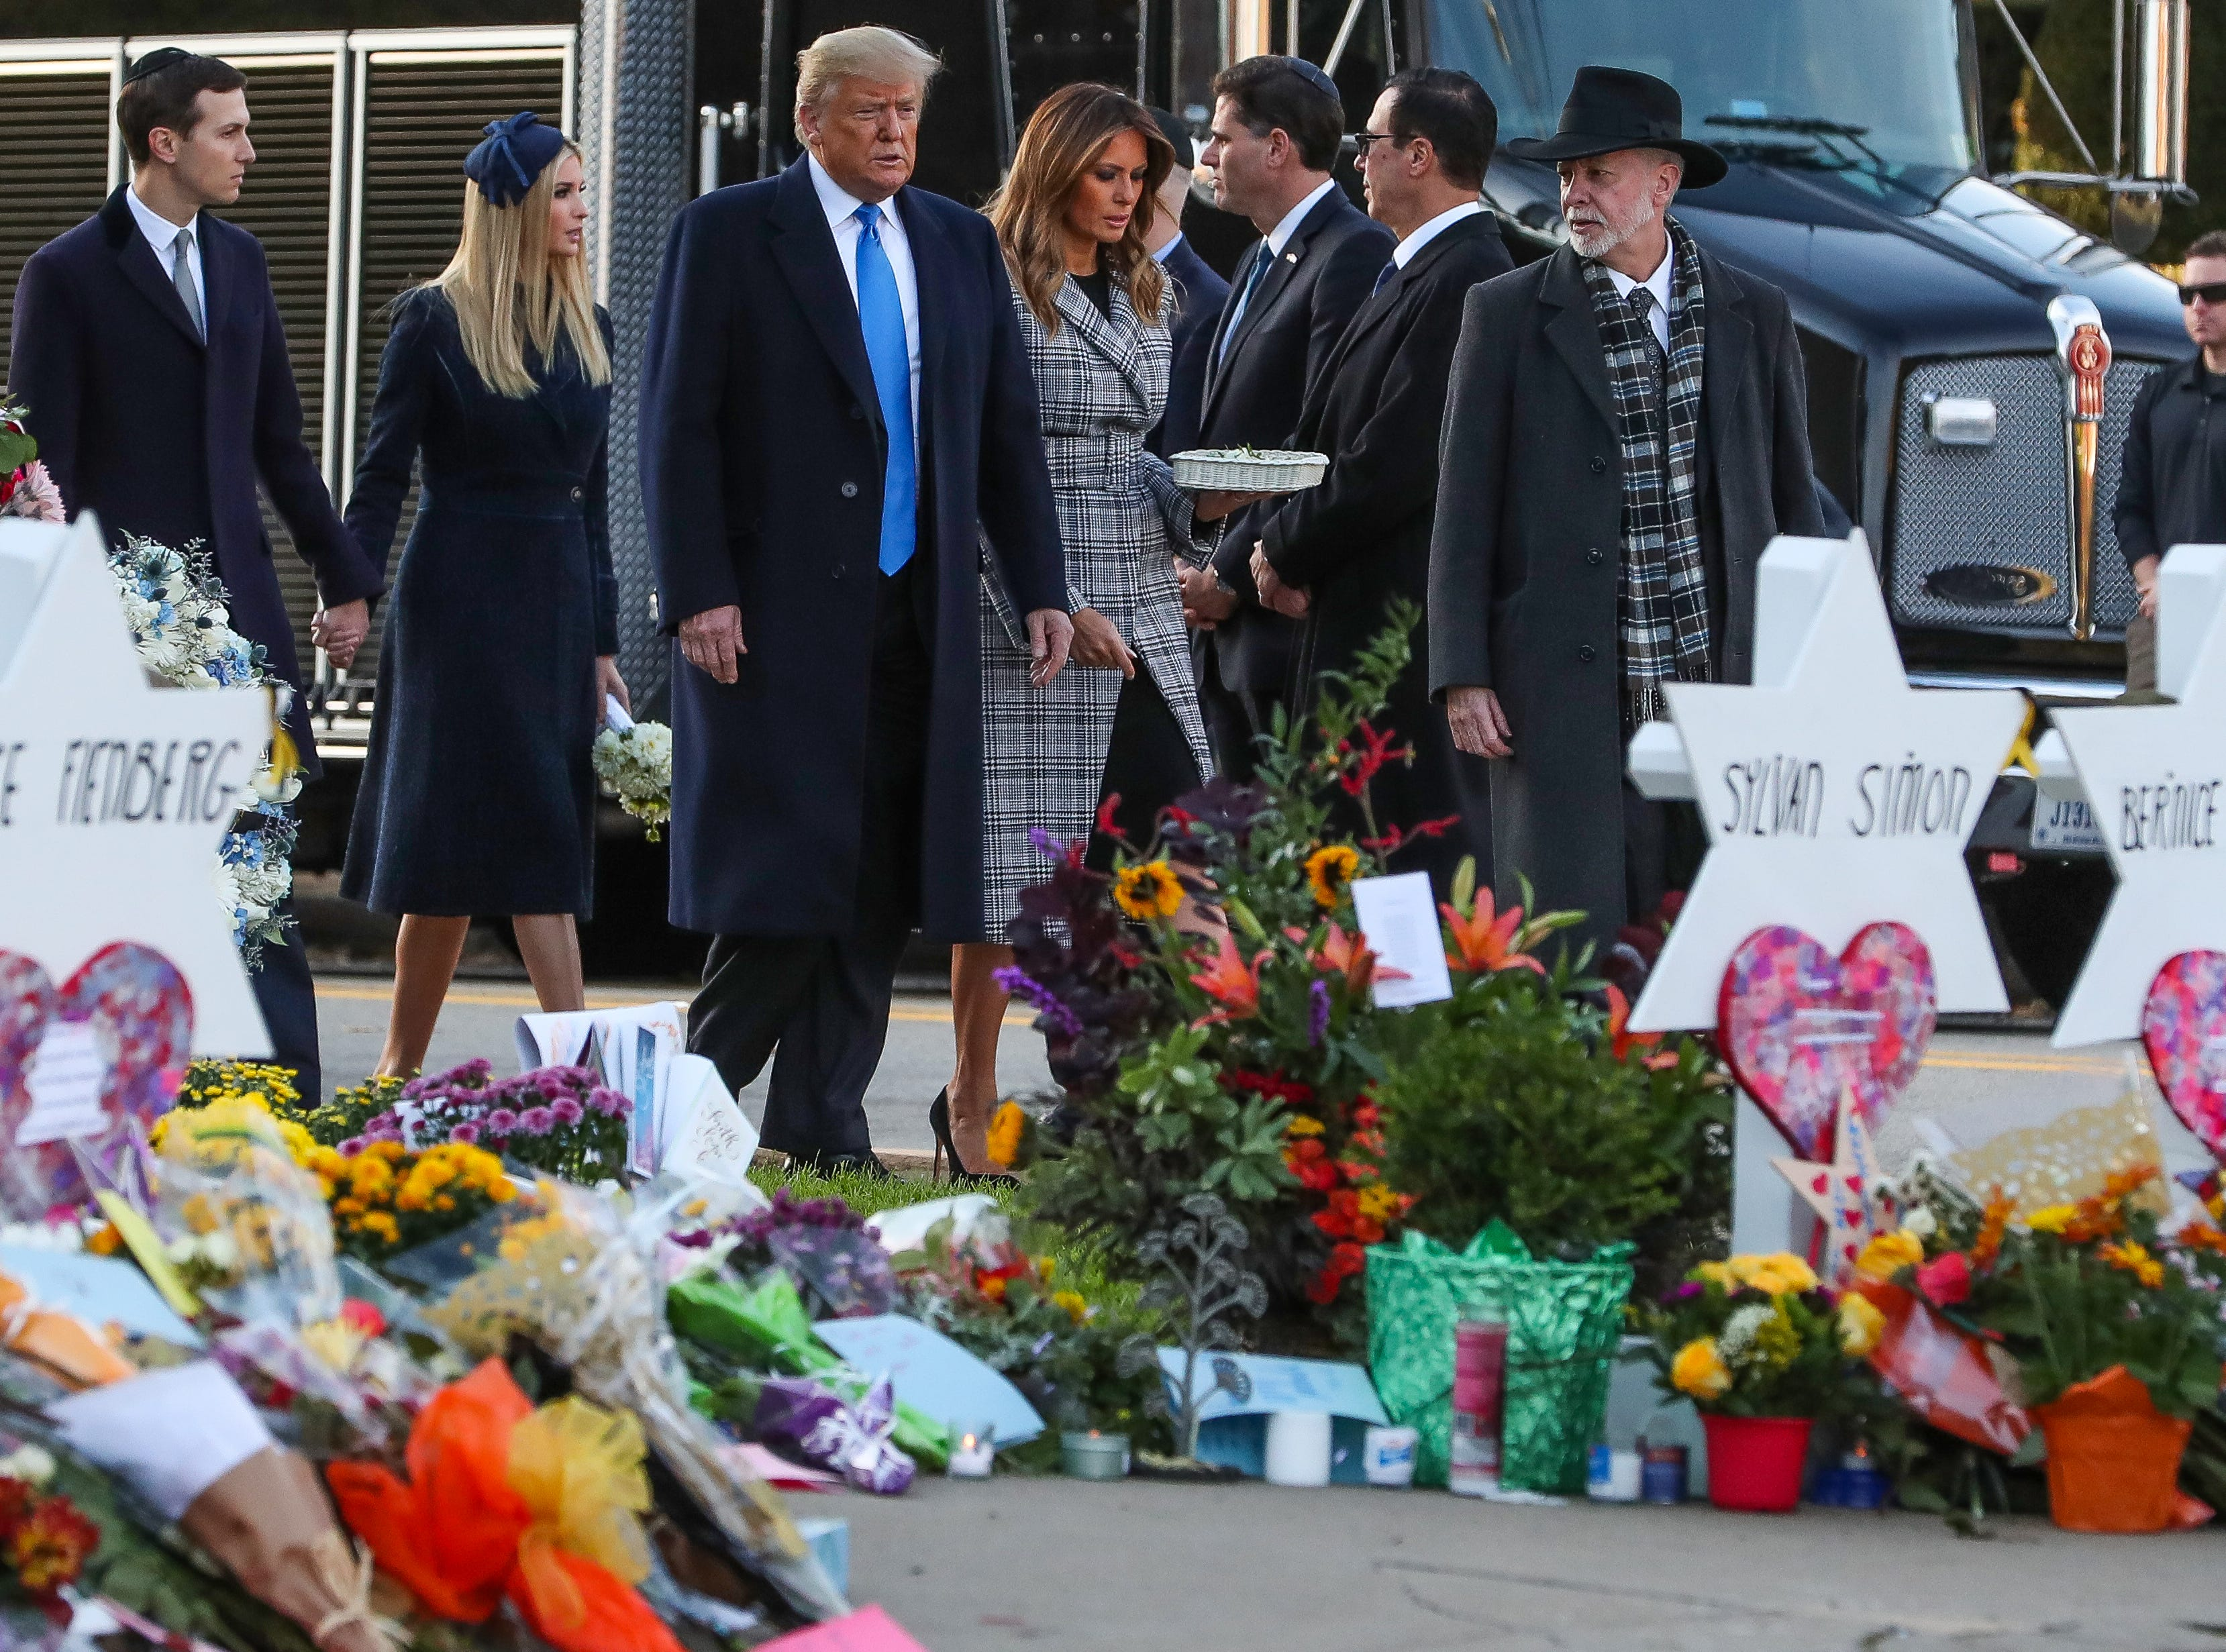 President Donald Trump walks with Melania, Ivanka and son-in-law Jared Kushner, alongside Tree of Life Synagogue rabbi Jeffrey Myers, near the memorial site to the 11 victims in Pittsburgh on Tuesday, Oct. 30, 2018.